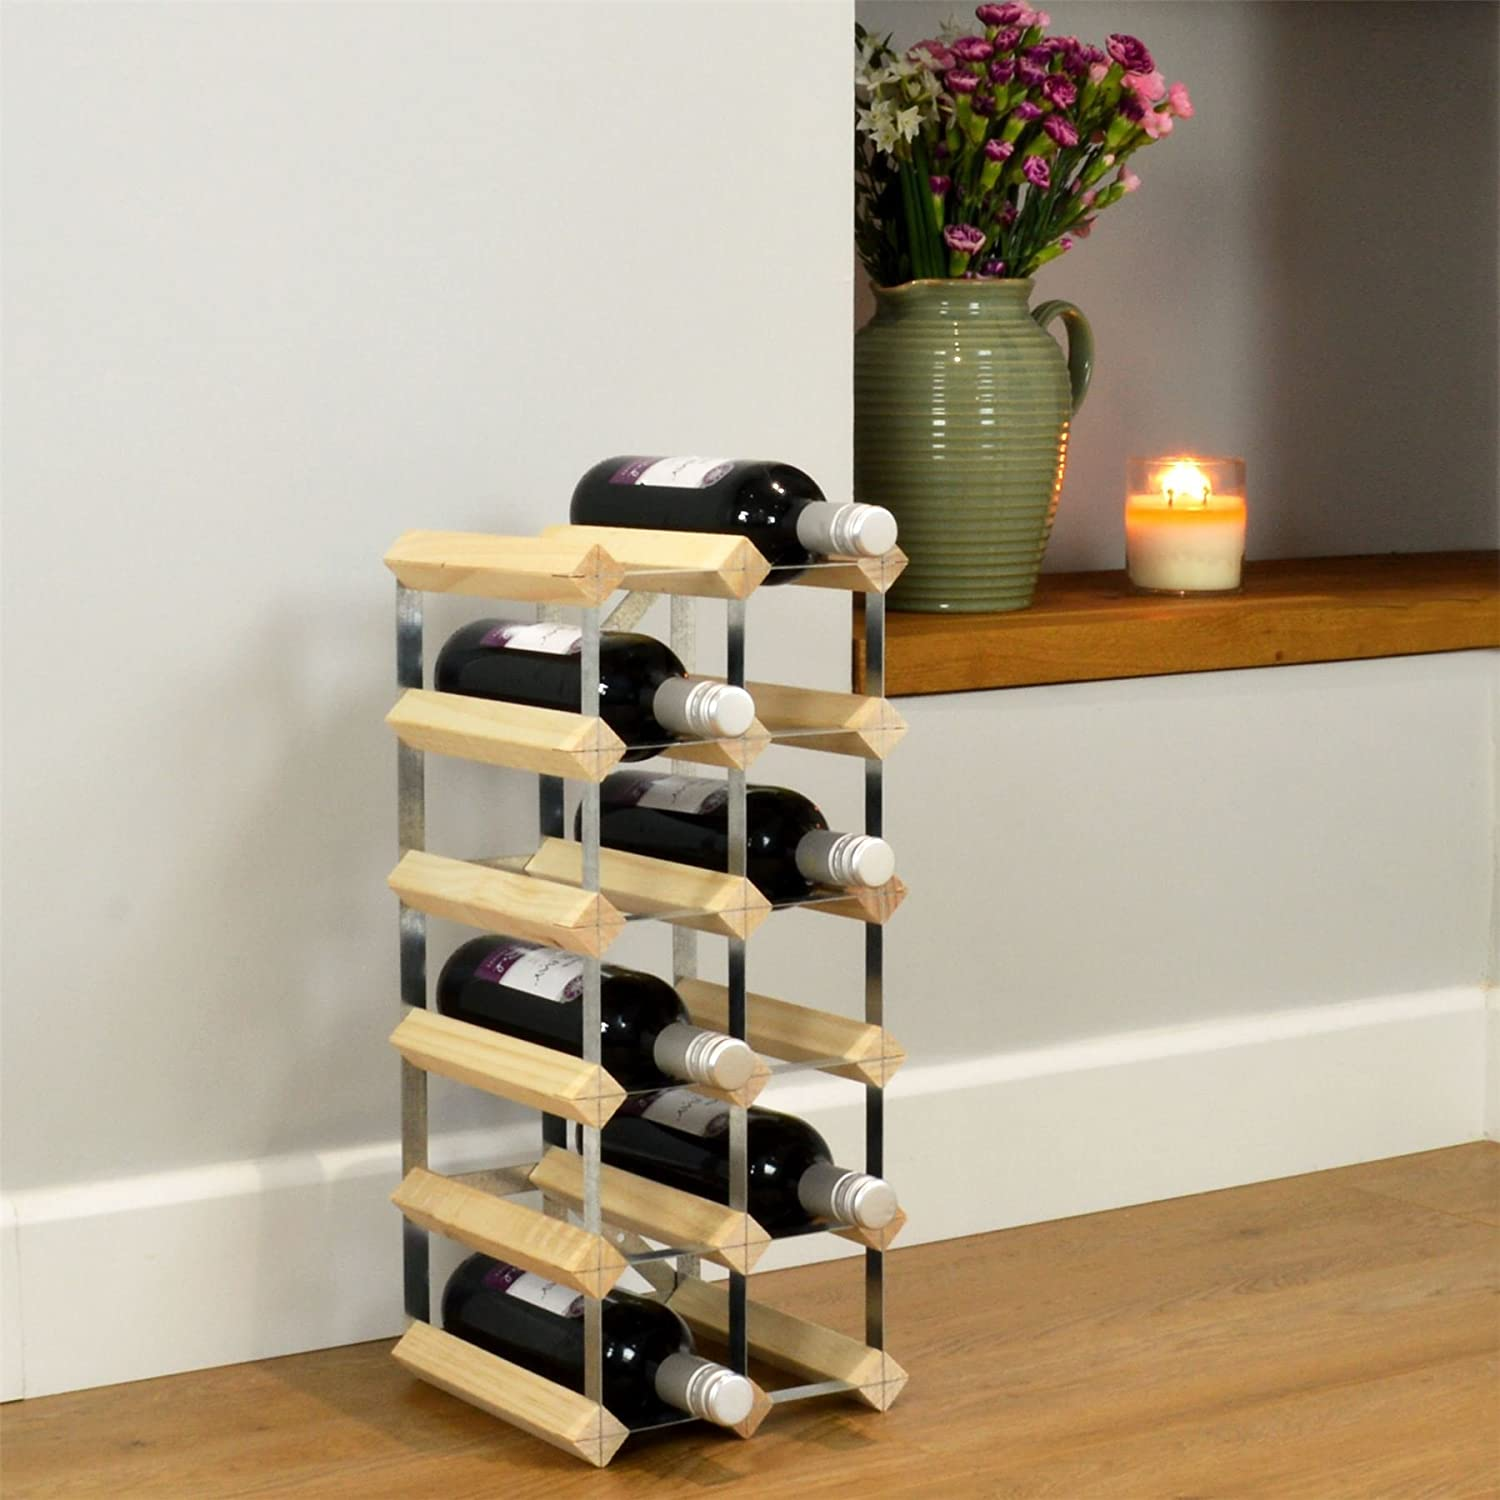 Harbour Housewares 15 Bottle Wine Rack  Fully Assembled